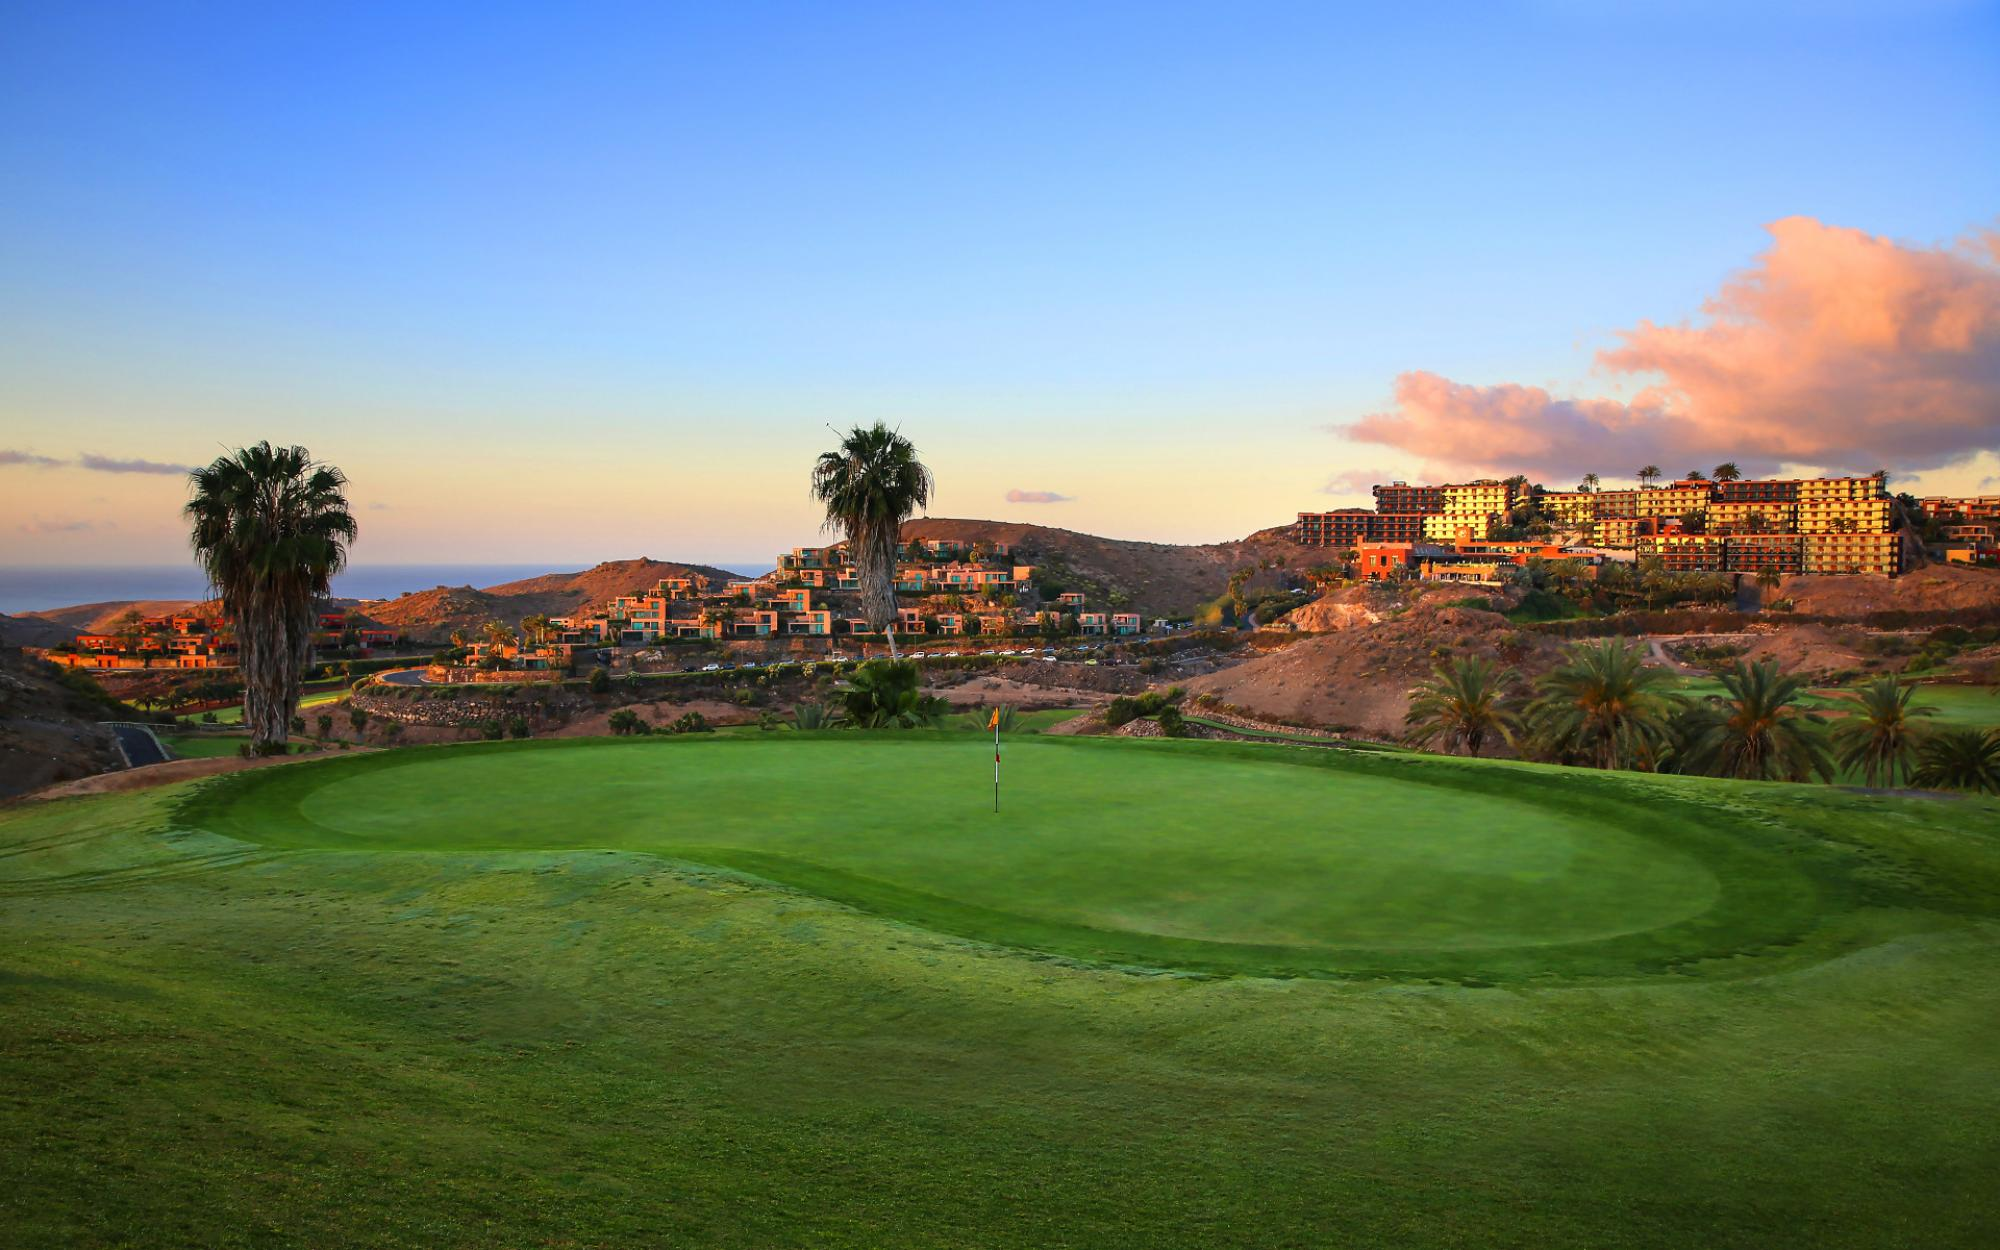 The Salobre Golf Course Old's beautiful golf course within marvelous Gran Canaria.